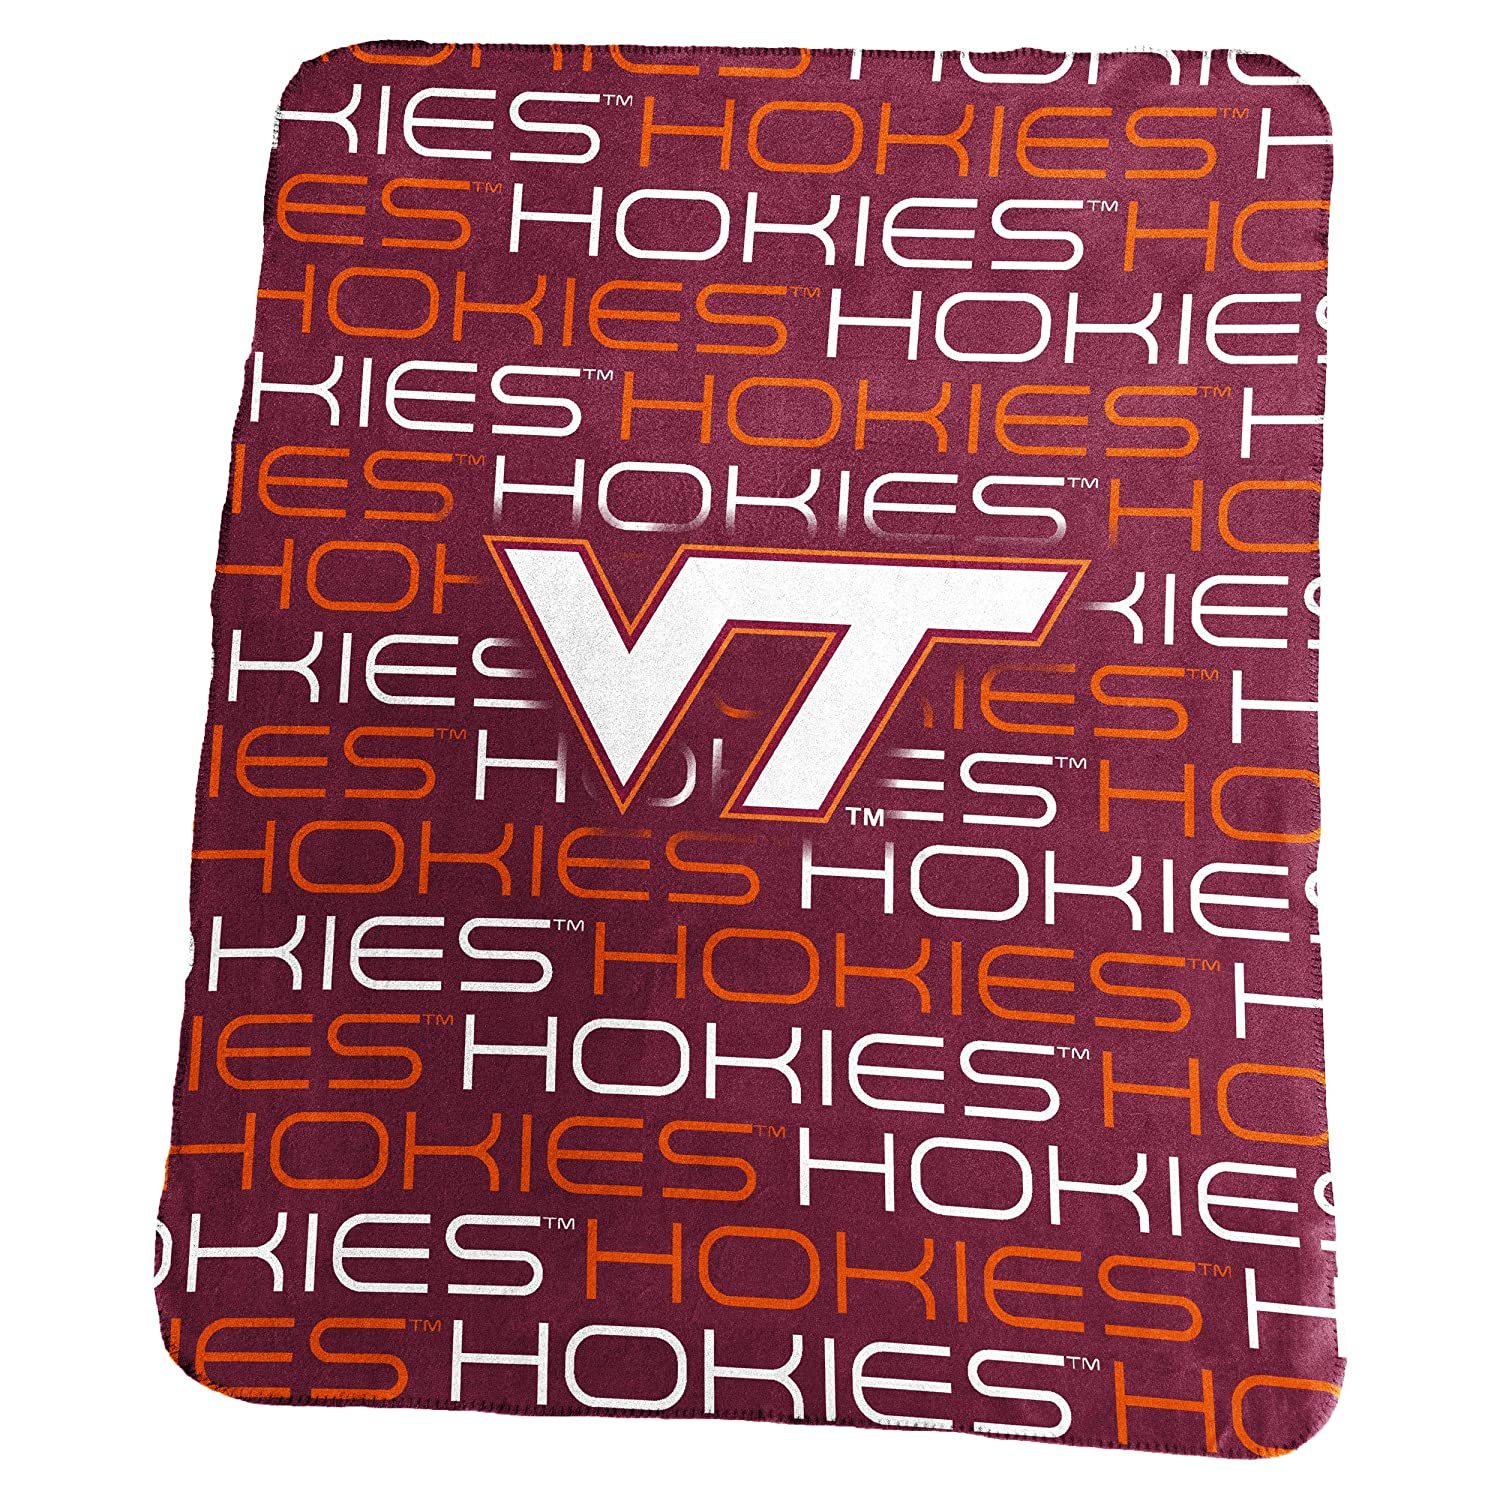 Collegiate 50x60 Classic Fleece Throw Blanket